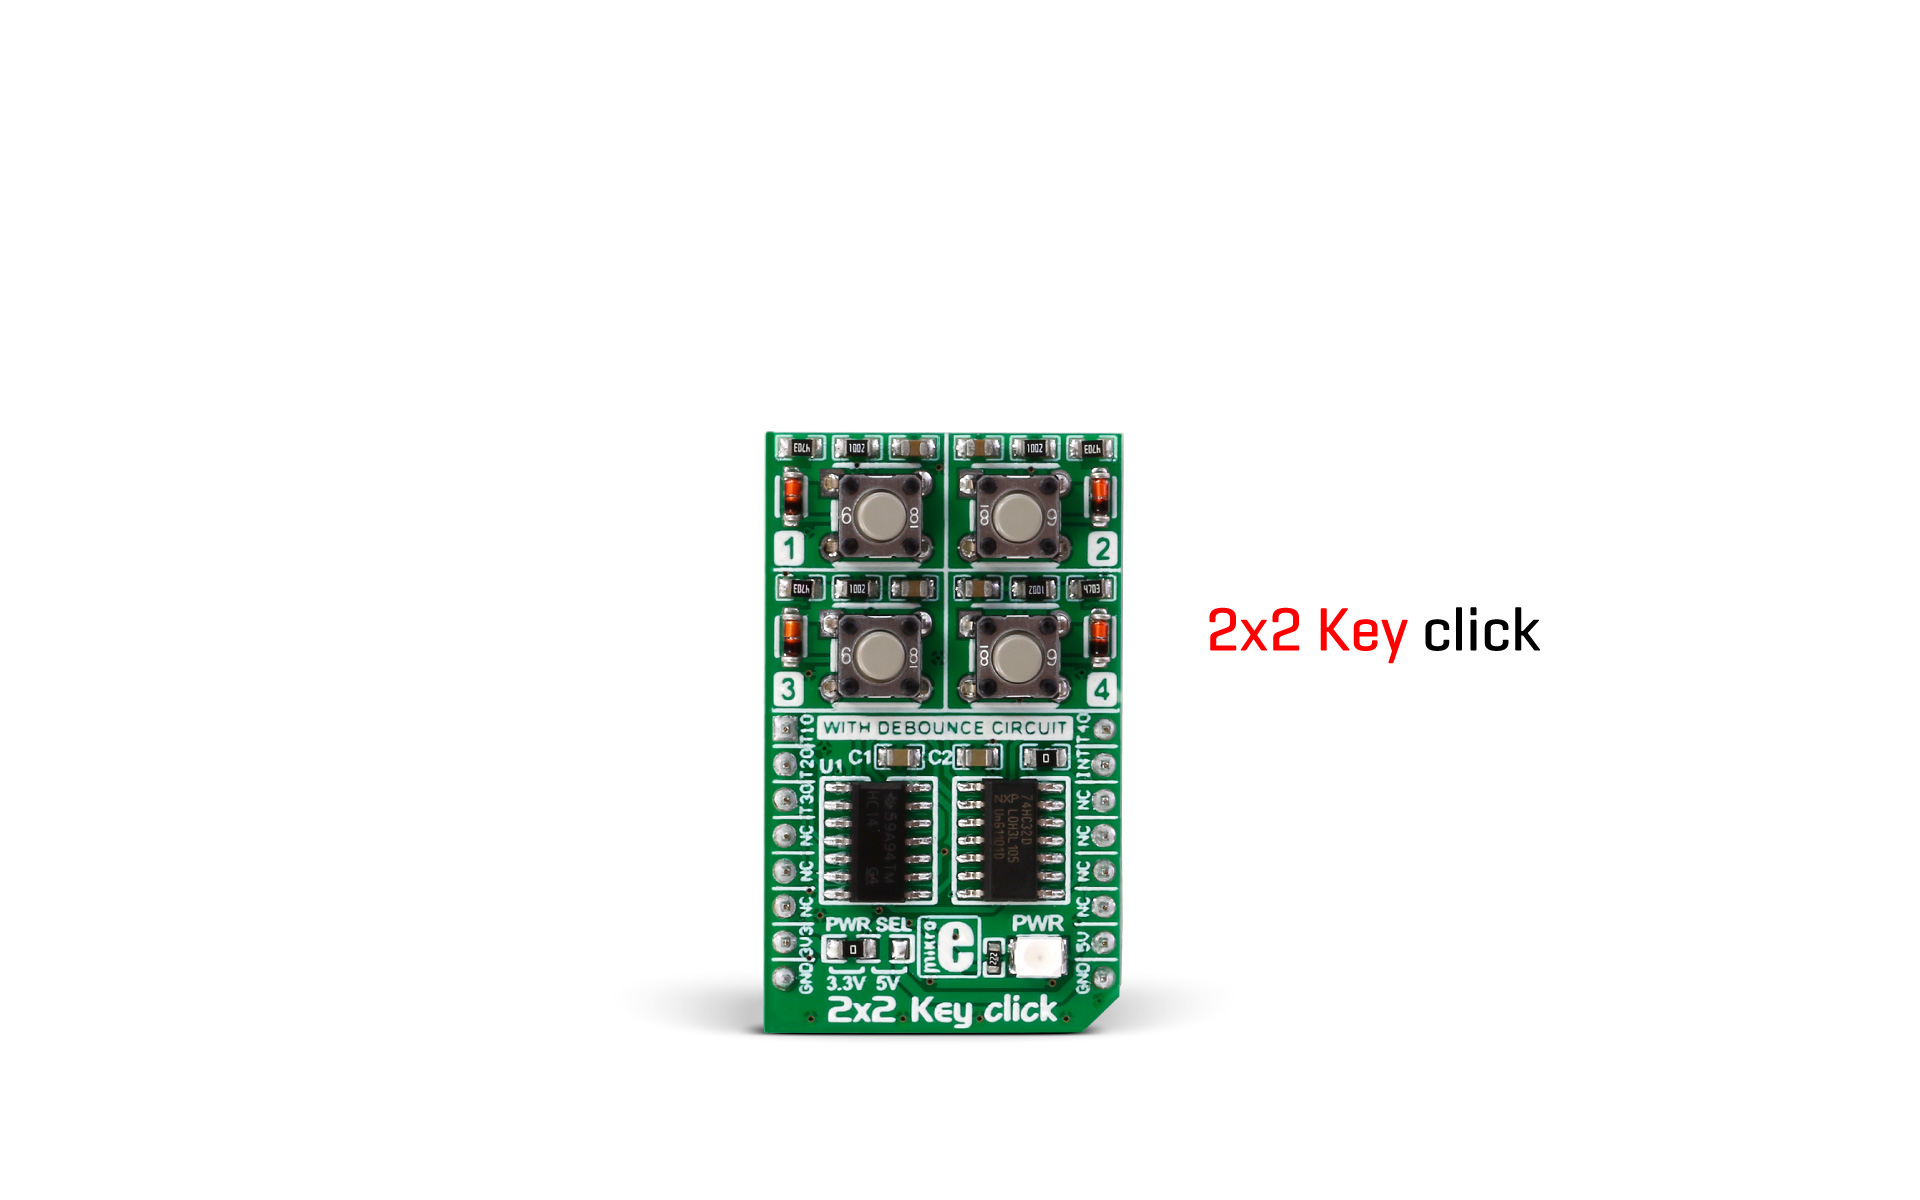 2x2 Key click is out